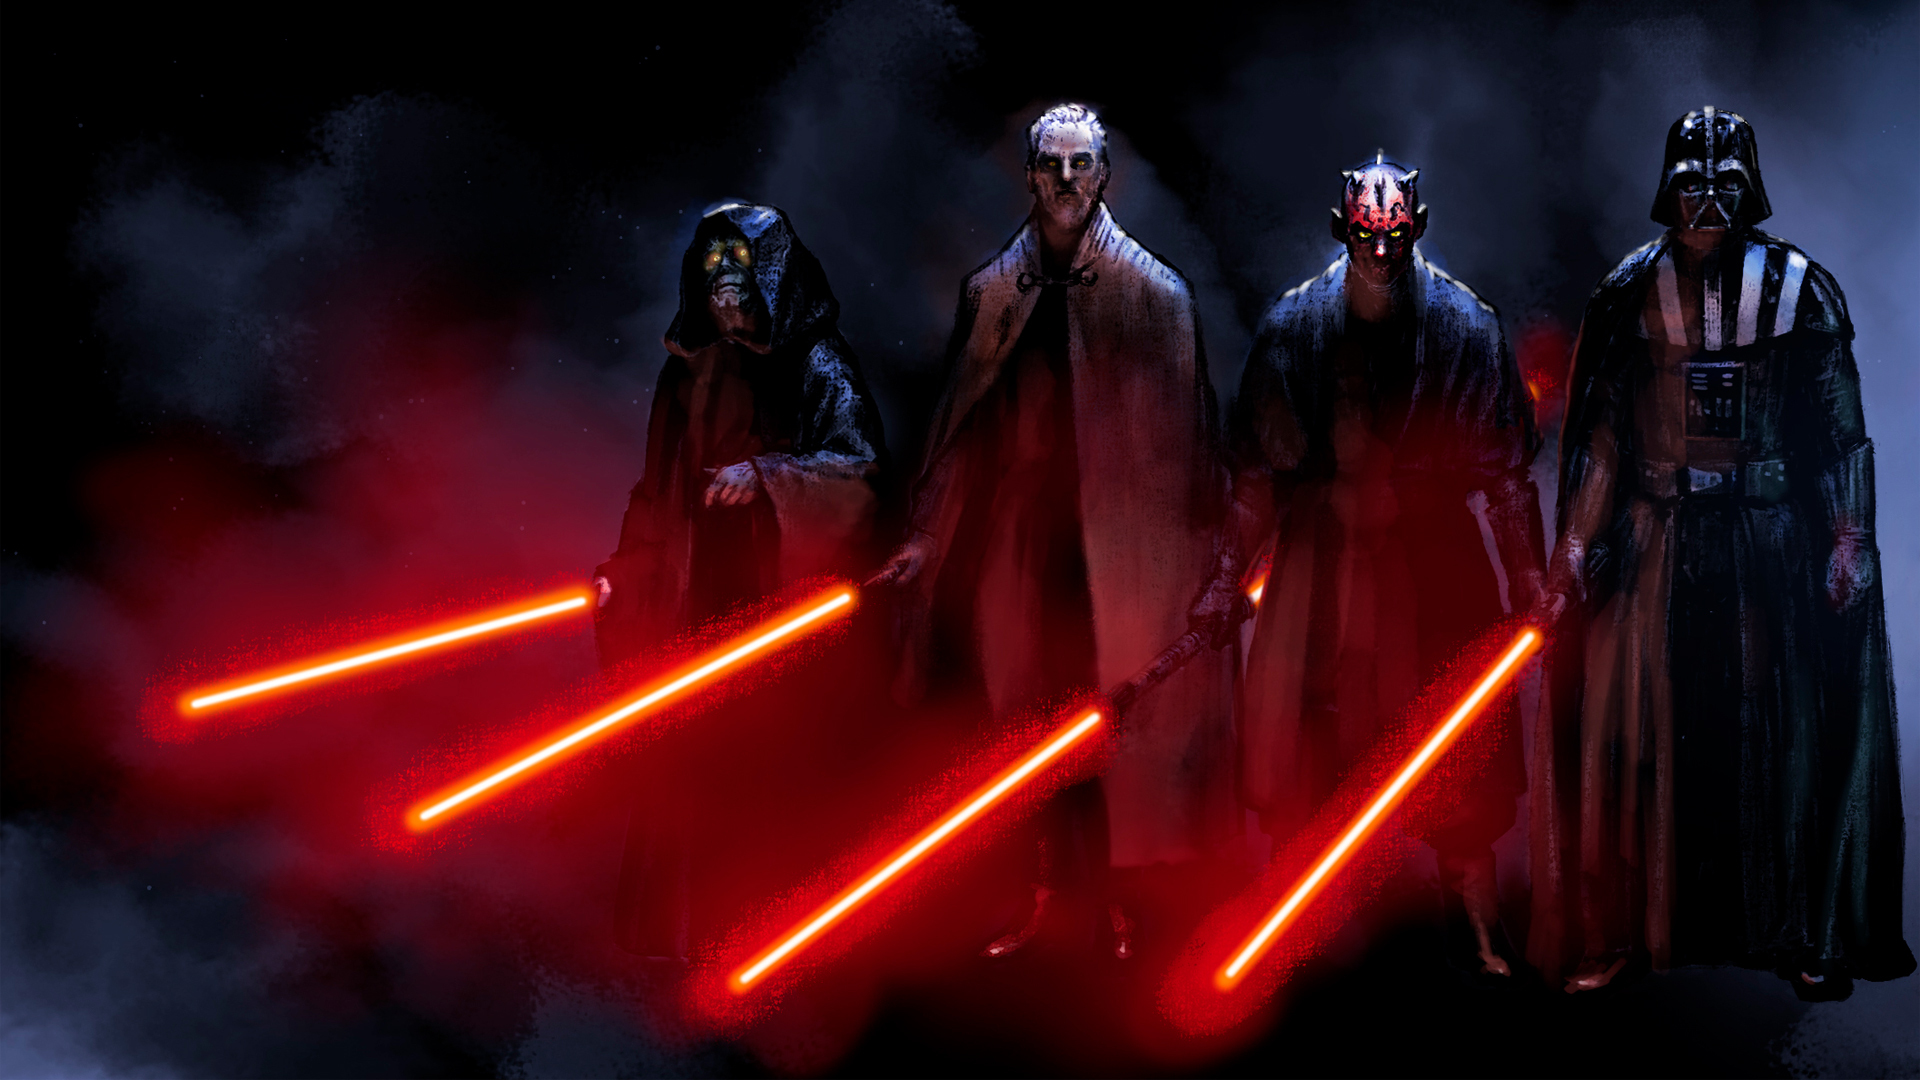 star wars wallpaper - sith from shadow of death - hosted by neoseeker